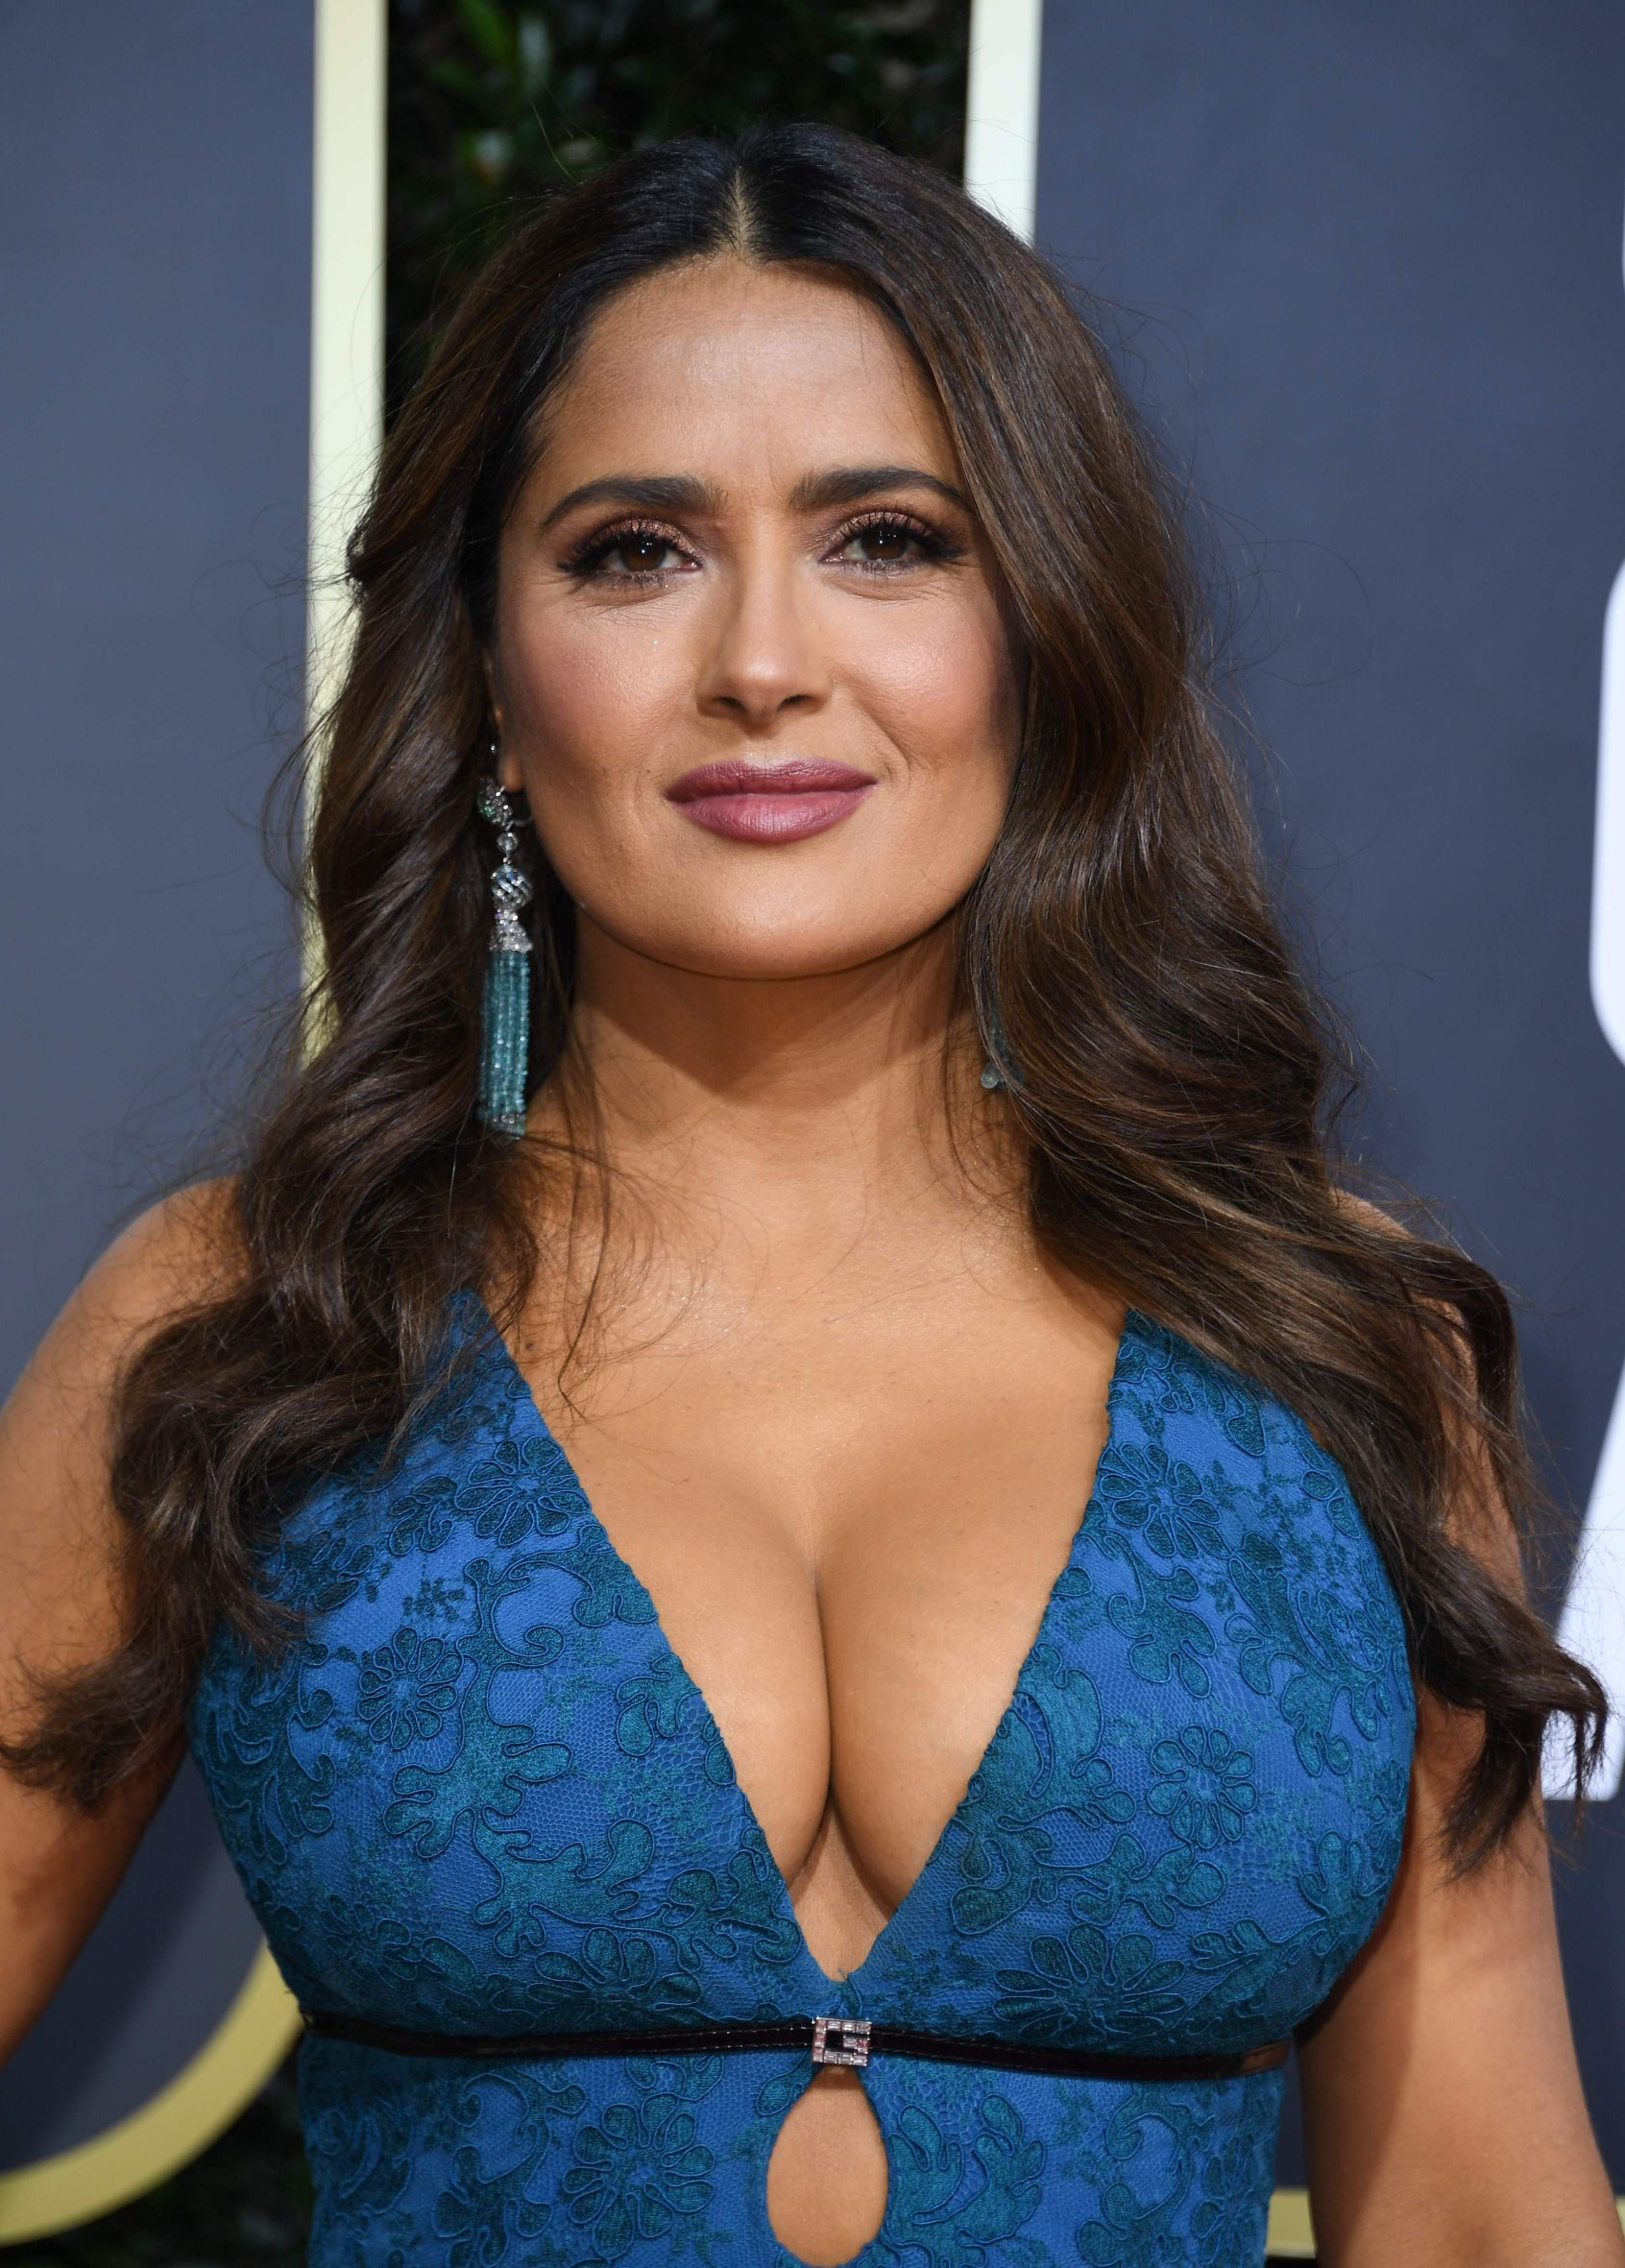 Actress Salma Hayek arrives for the 77th annual Golden Globe Awards on January 5, 2020, at The Beverly Hilton hotel in Beverly Hills, California. (Photo by VALERIE MACON / AFP)